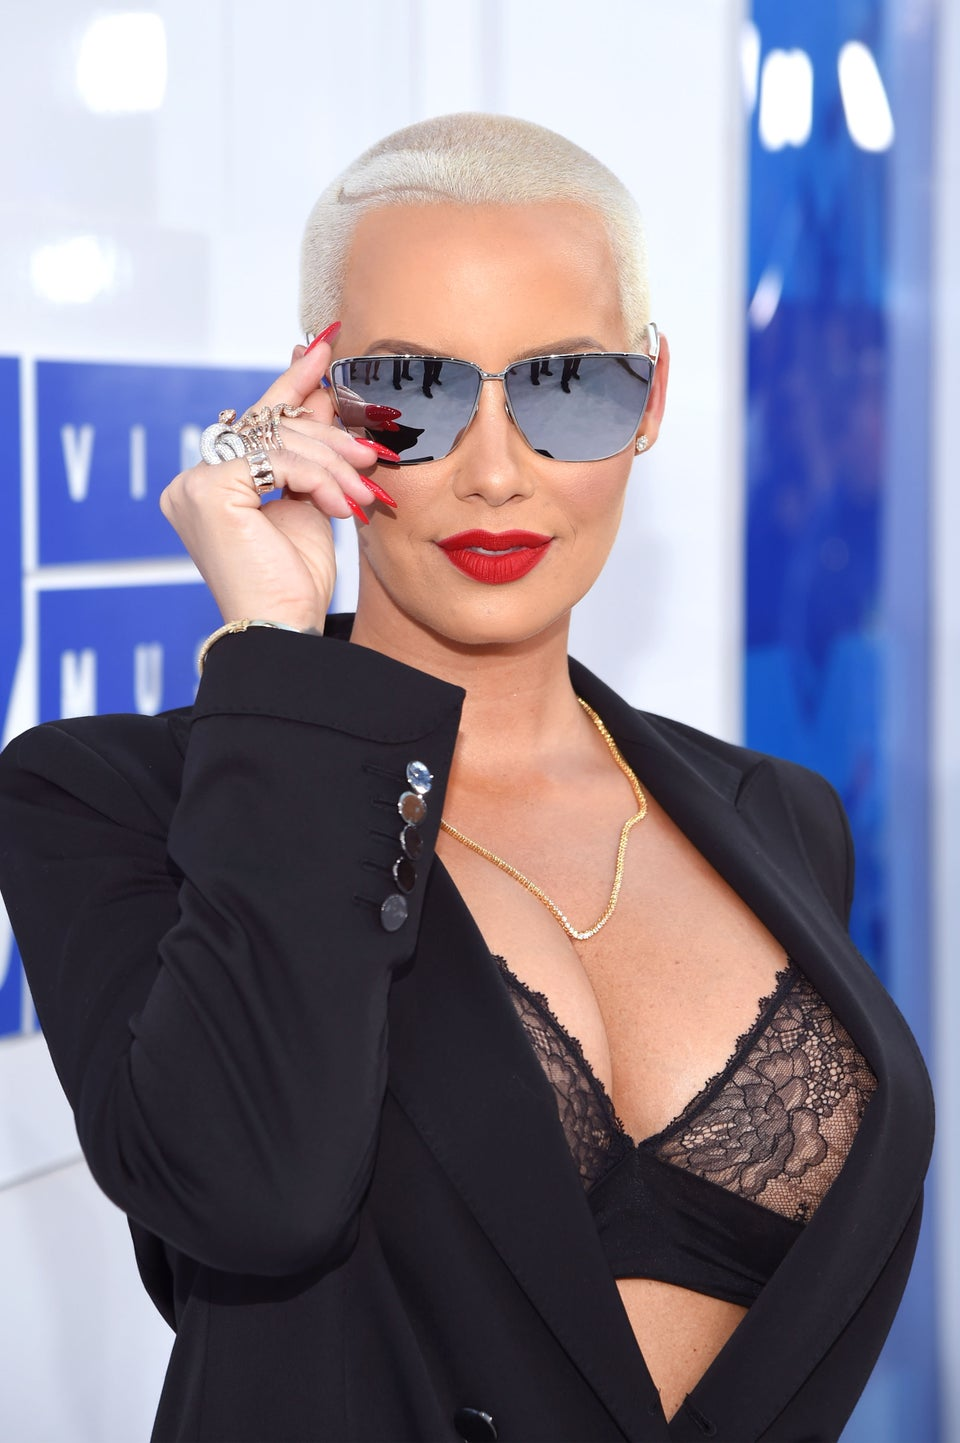 Amber Rose is the New Face of Missguided Clothing